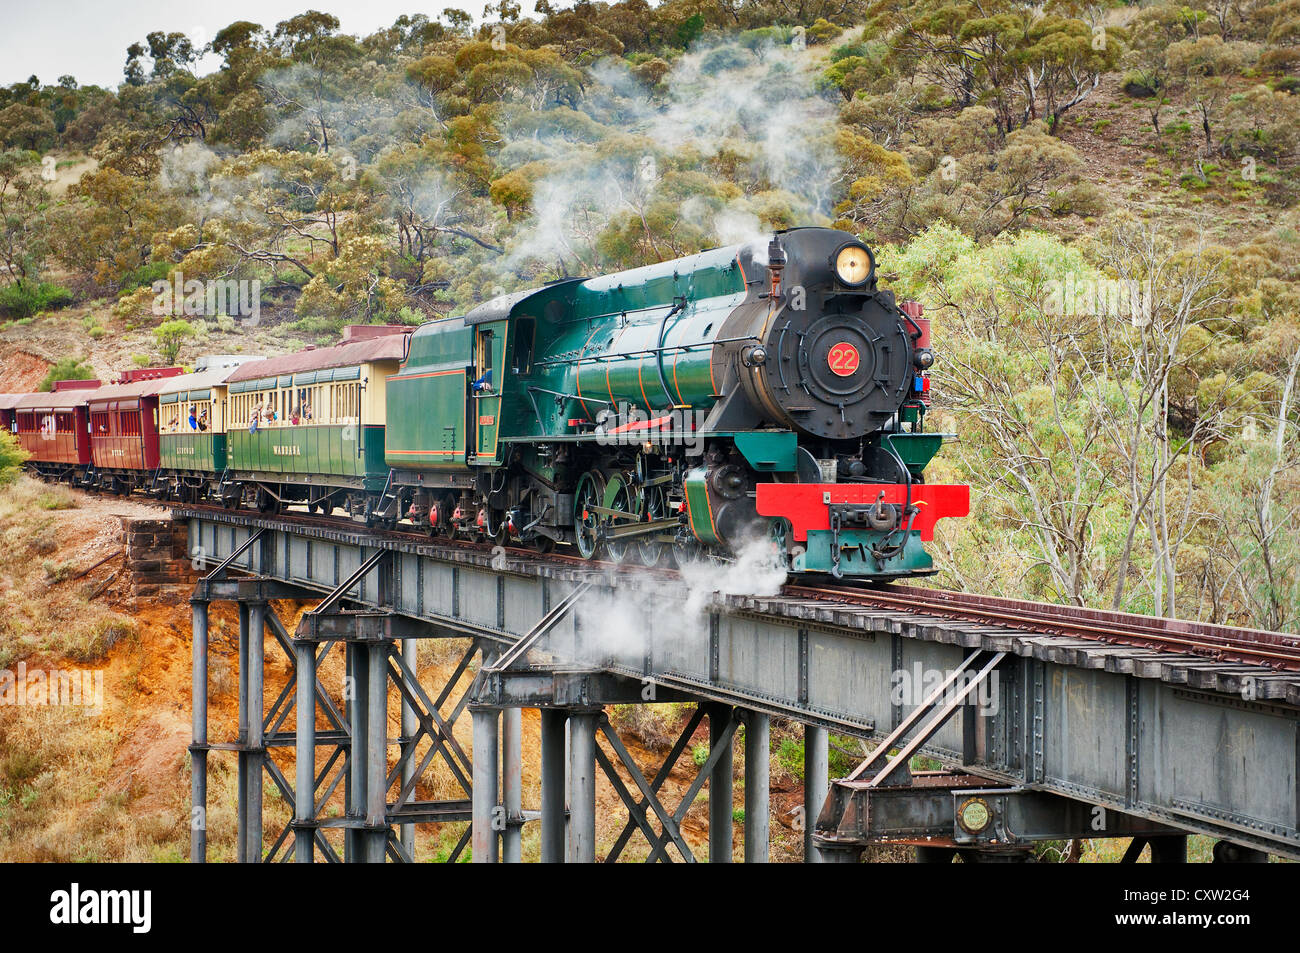 Historical Pichi Richi Railway in the South of the Flinders Ranges. - Stock Image